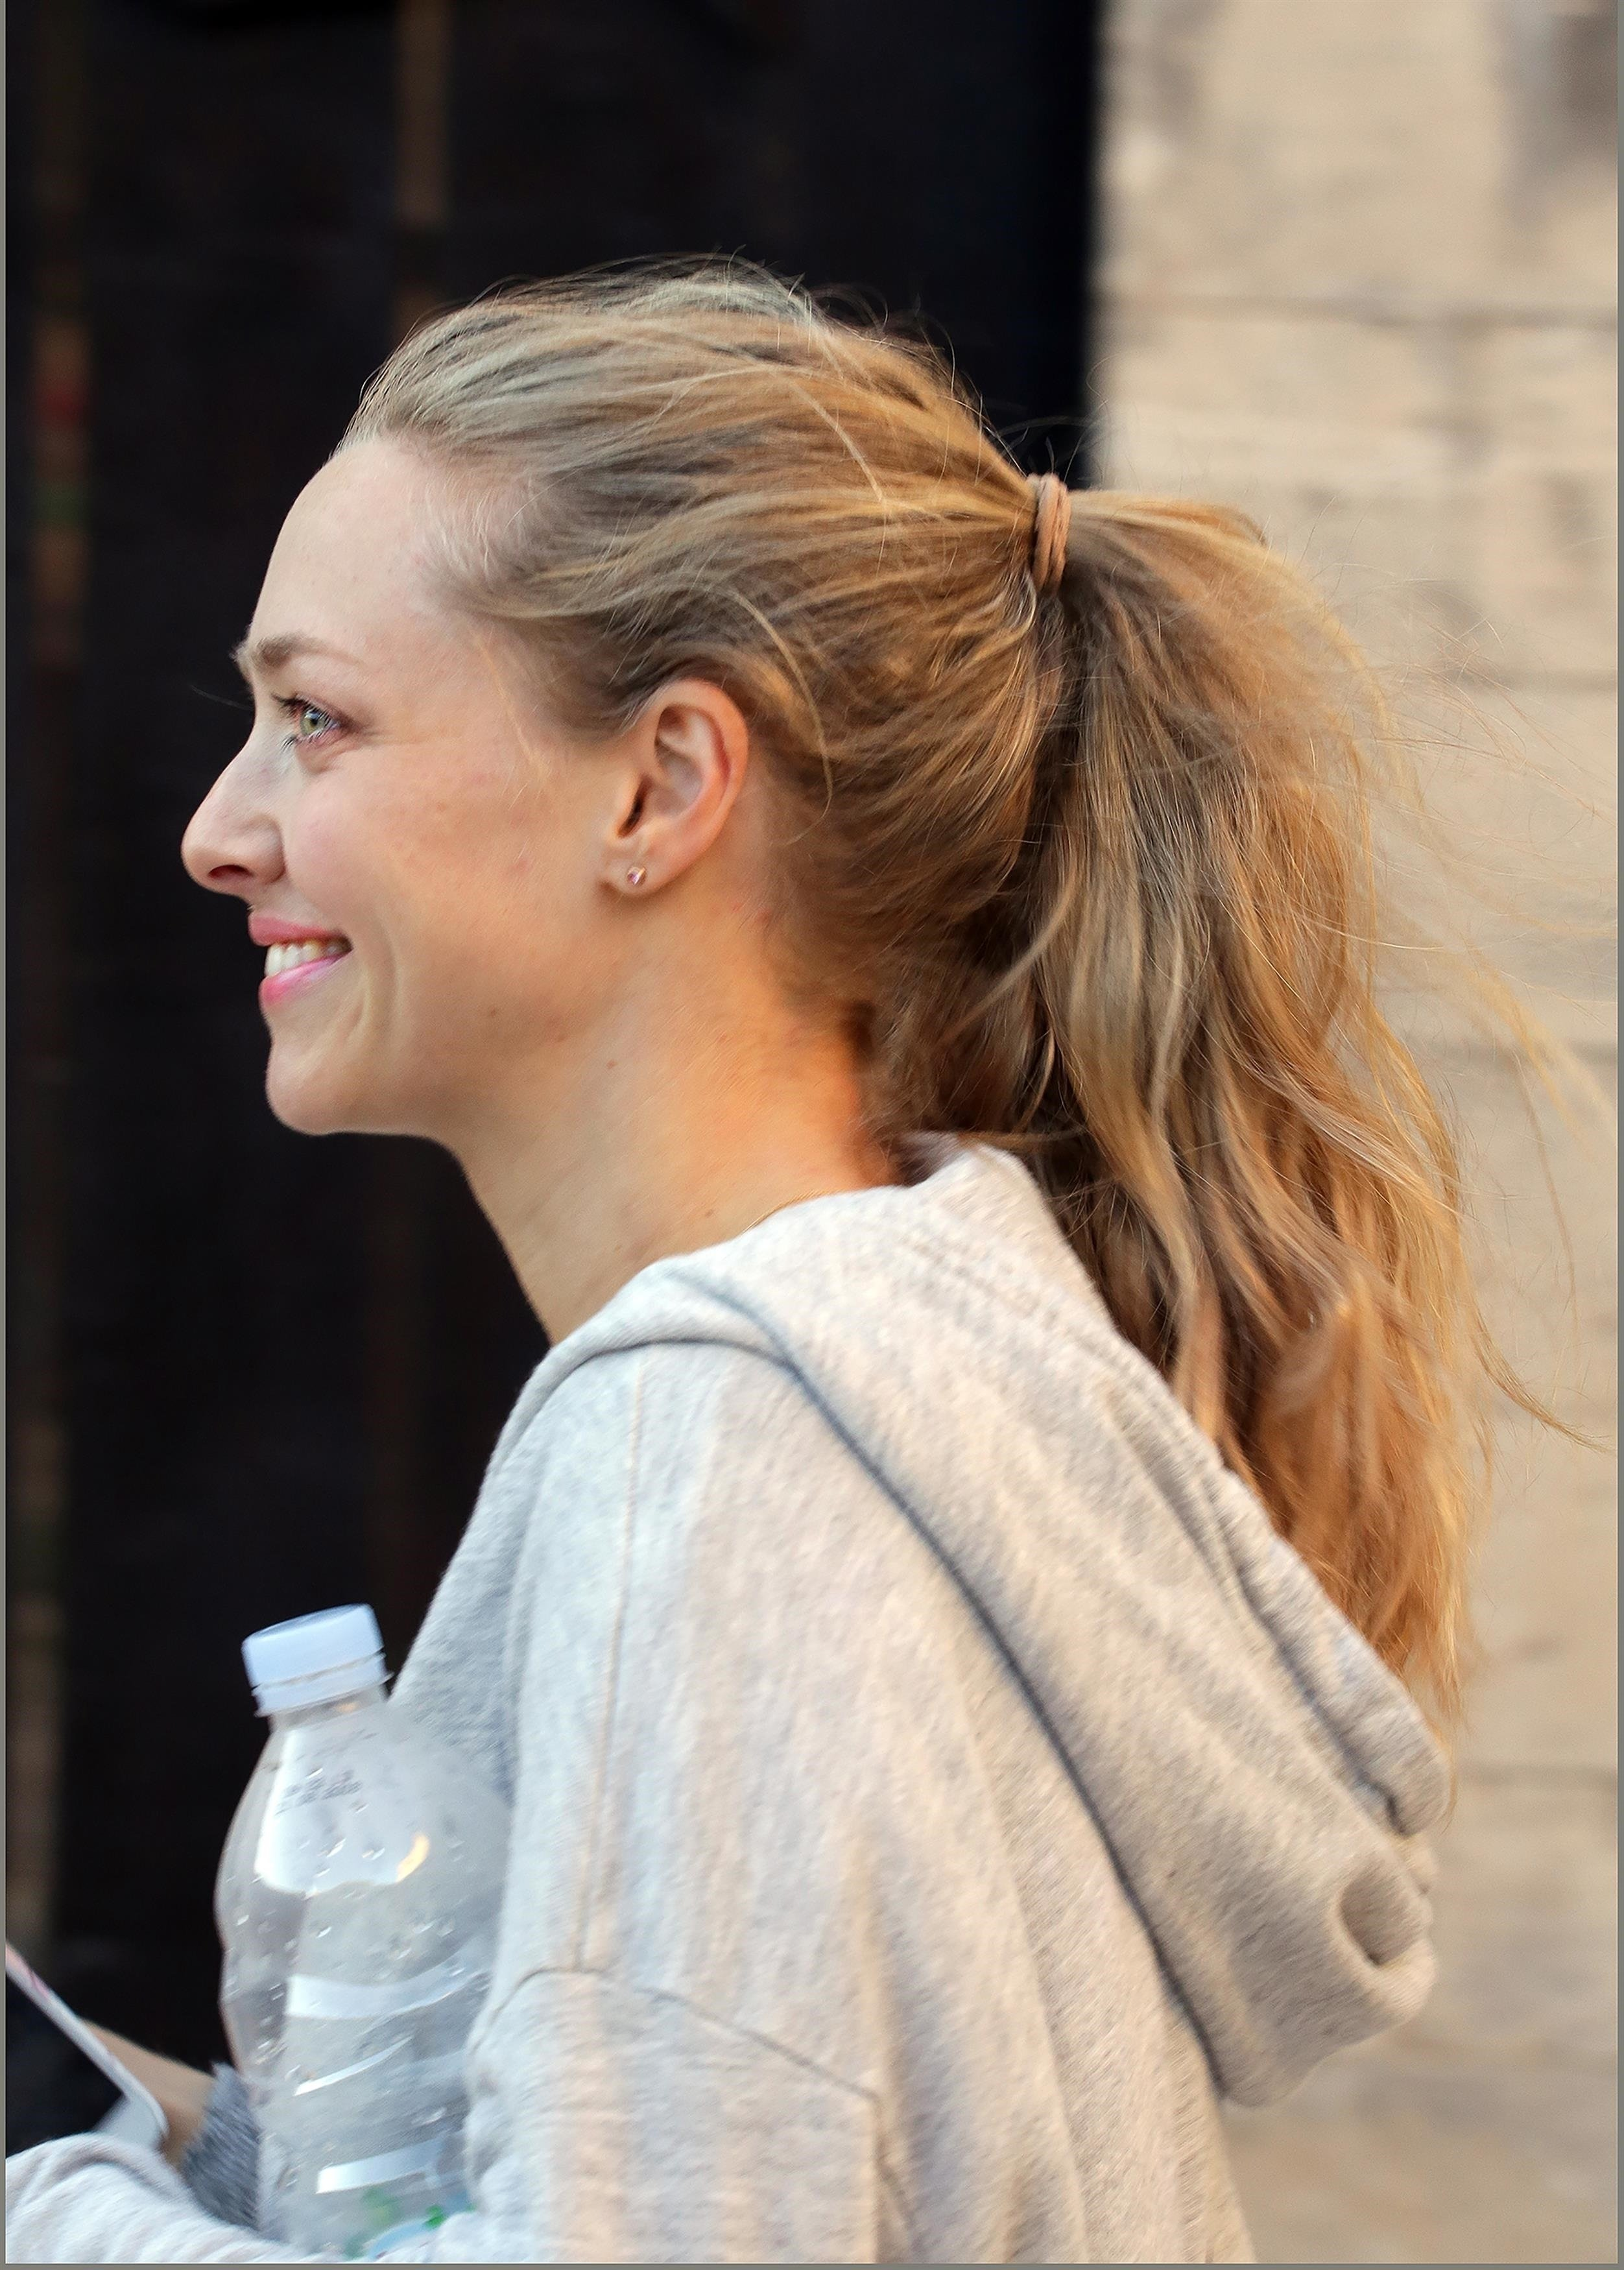 Fort George, CROATIA  - *EXCLUSIVE*  - Amanda Seyfried dresses down and goes makeup free to visit a tourist attraction where she is filming the new Mama Mia! sequel. Amanda, 31, left her six-month-old baby daughter with husband Thomas Sadoski to take a walk to Fort George on the island of Vis, Croatia. Amanda is shooting scenes for the new movie, Mama Mia: Here We Go Again! on the island. Amanda and her family are staying in a rented home on the island during filming.  Pictured: Amanda Seyfried  BACKGRID USA 21 SEPTEMBER 2017   USA: +1 310 798 9111 / usasales@backgrid.com  UK: +44 208 344 2007 / uksales@backgrid.com  *UK Clients - Pictures Containing Children Please Pixelate Face Prior To Publication*, Image: 350112019, License: Rights-managed, Restrictions: , Model Release: no, Credit line: Profimedia, AKM-GSI